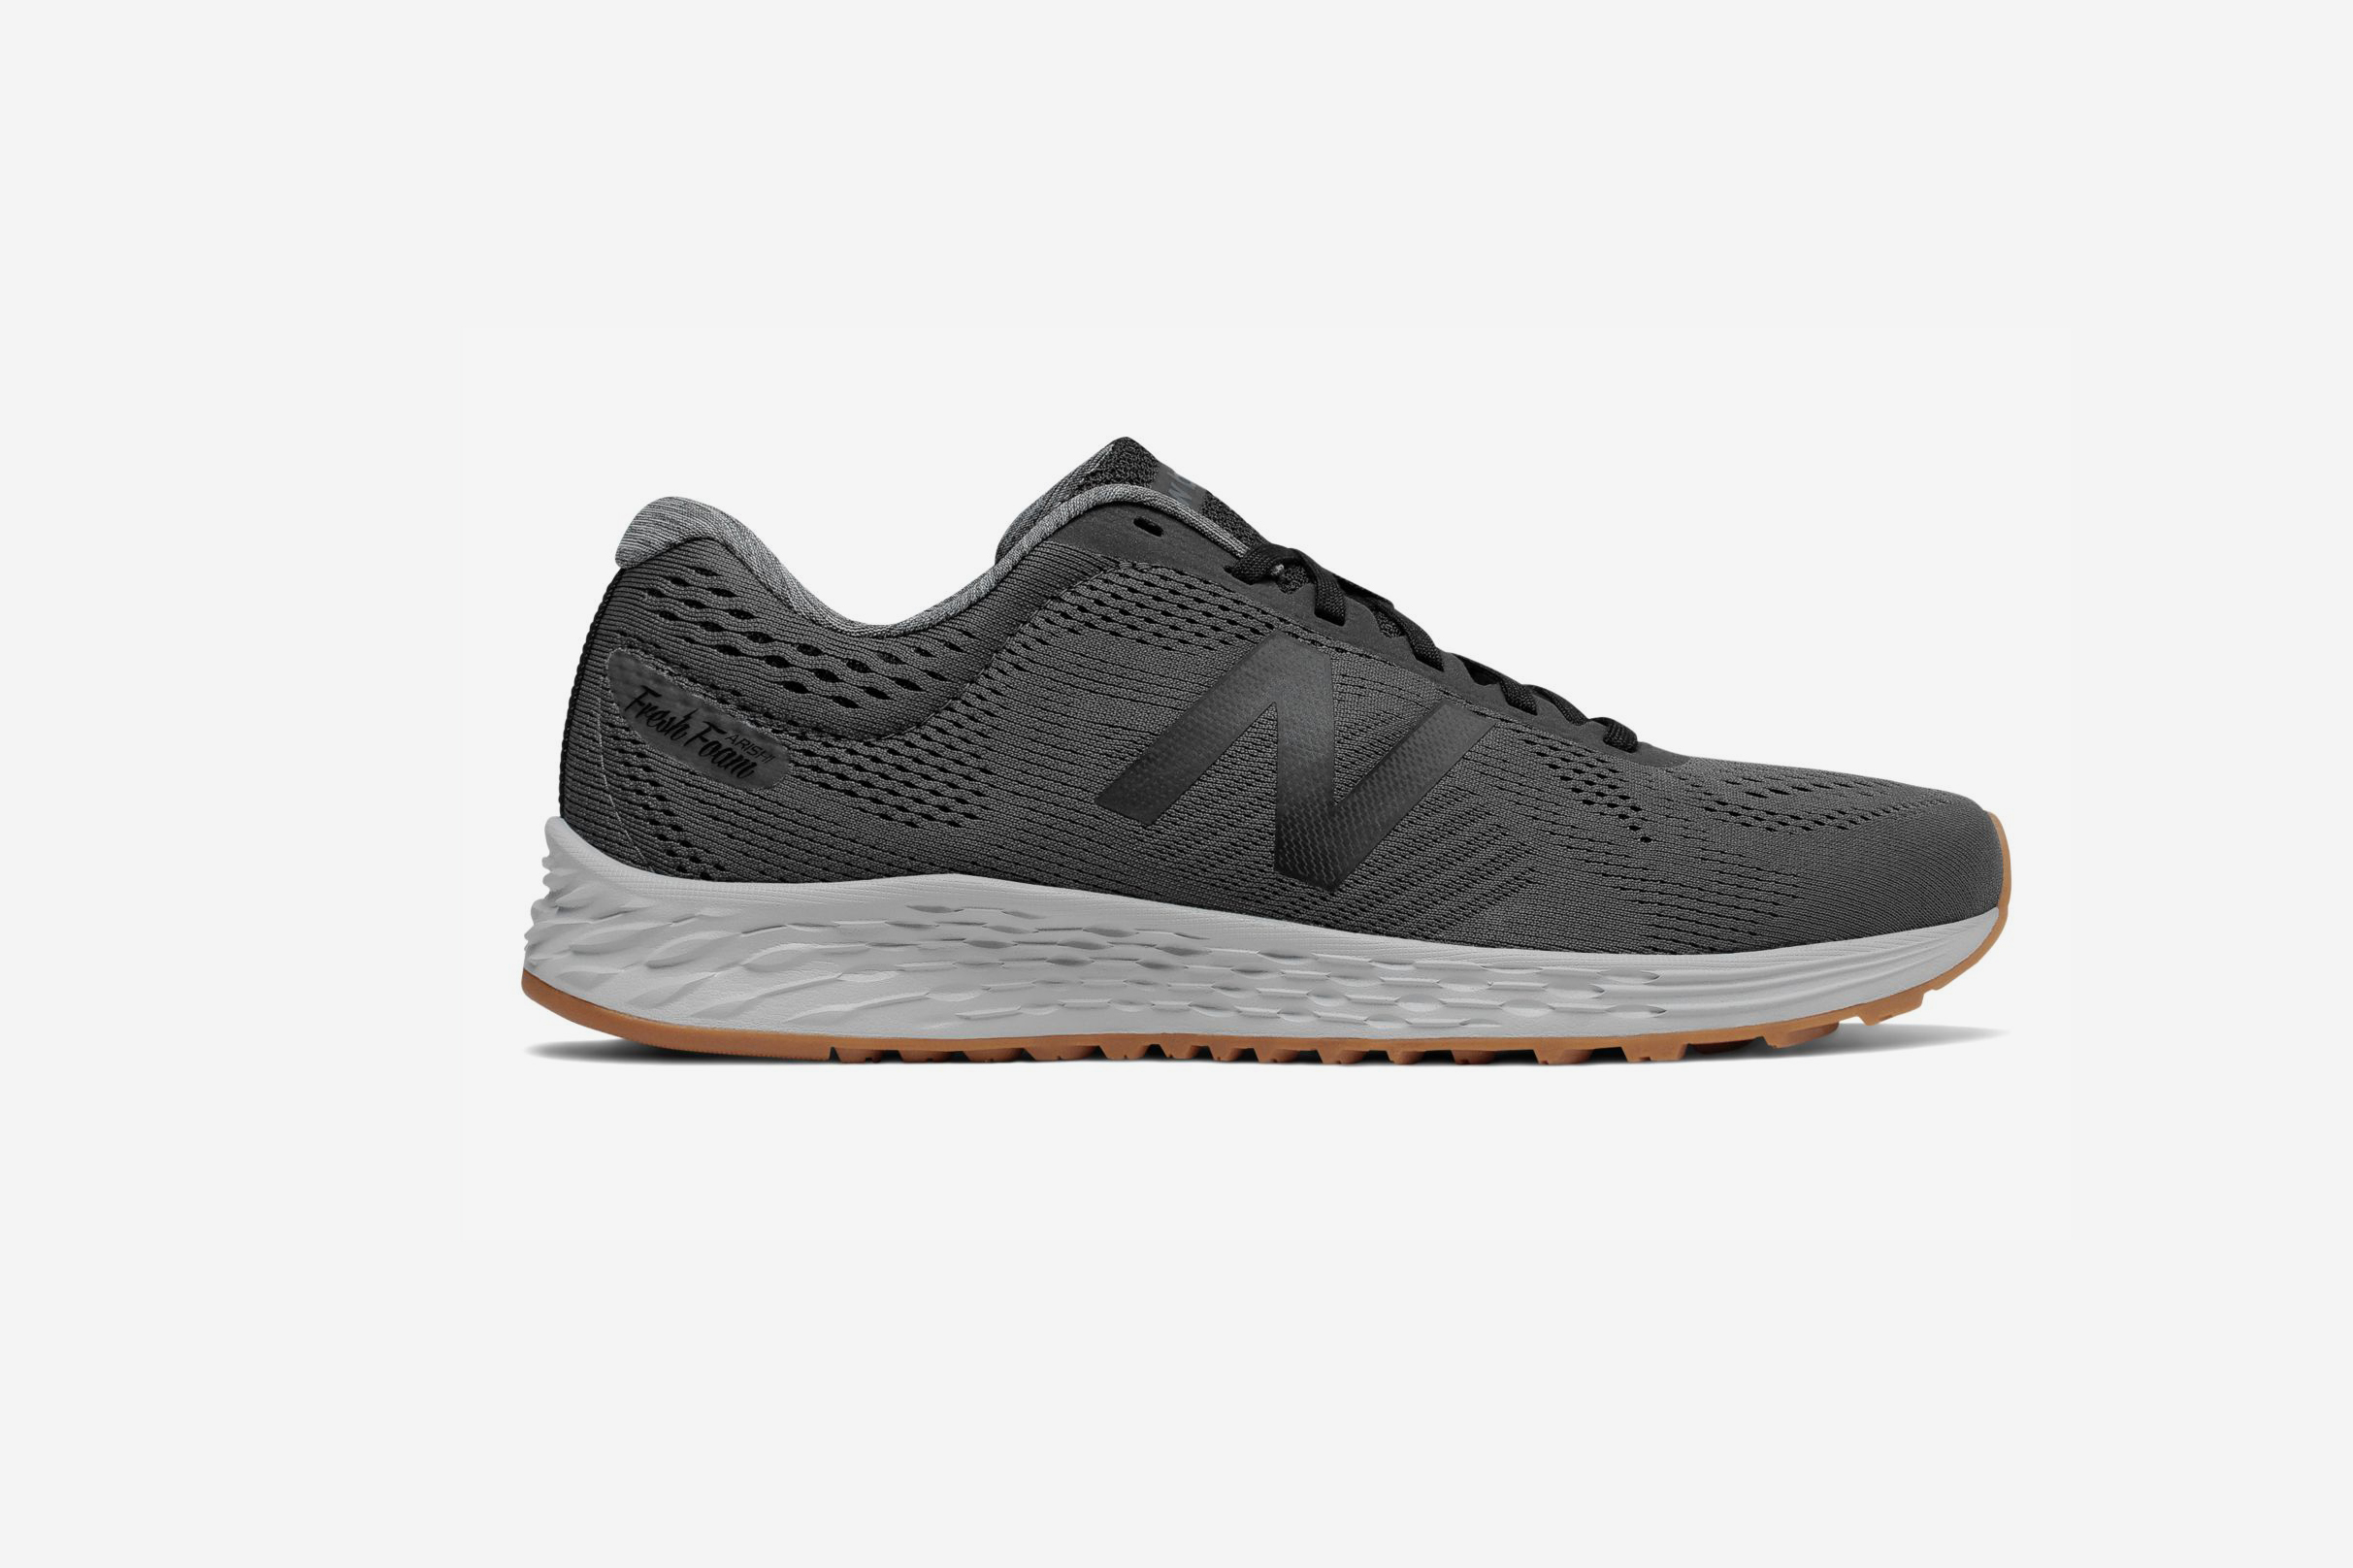 premium selection c9b0e 88925 New Balance USA Has Some Sweet Deals for Black Friday 2017